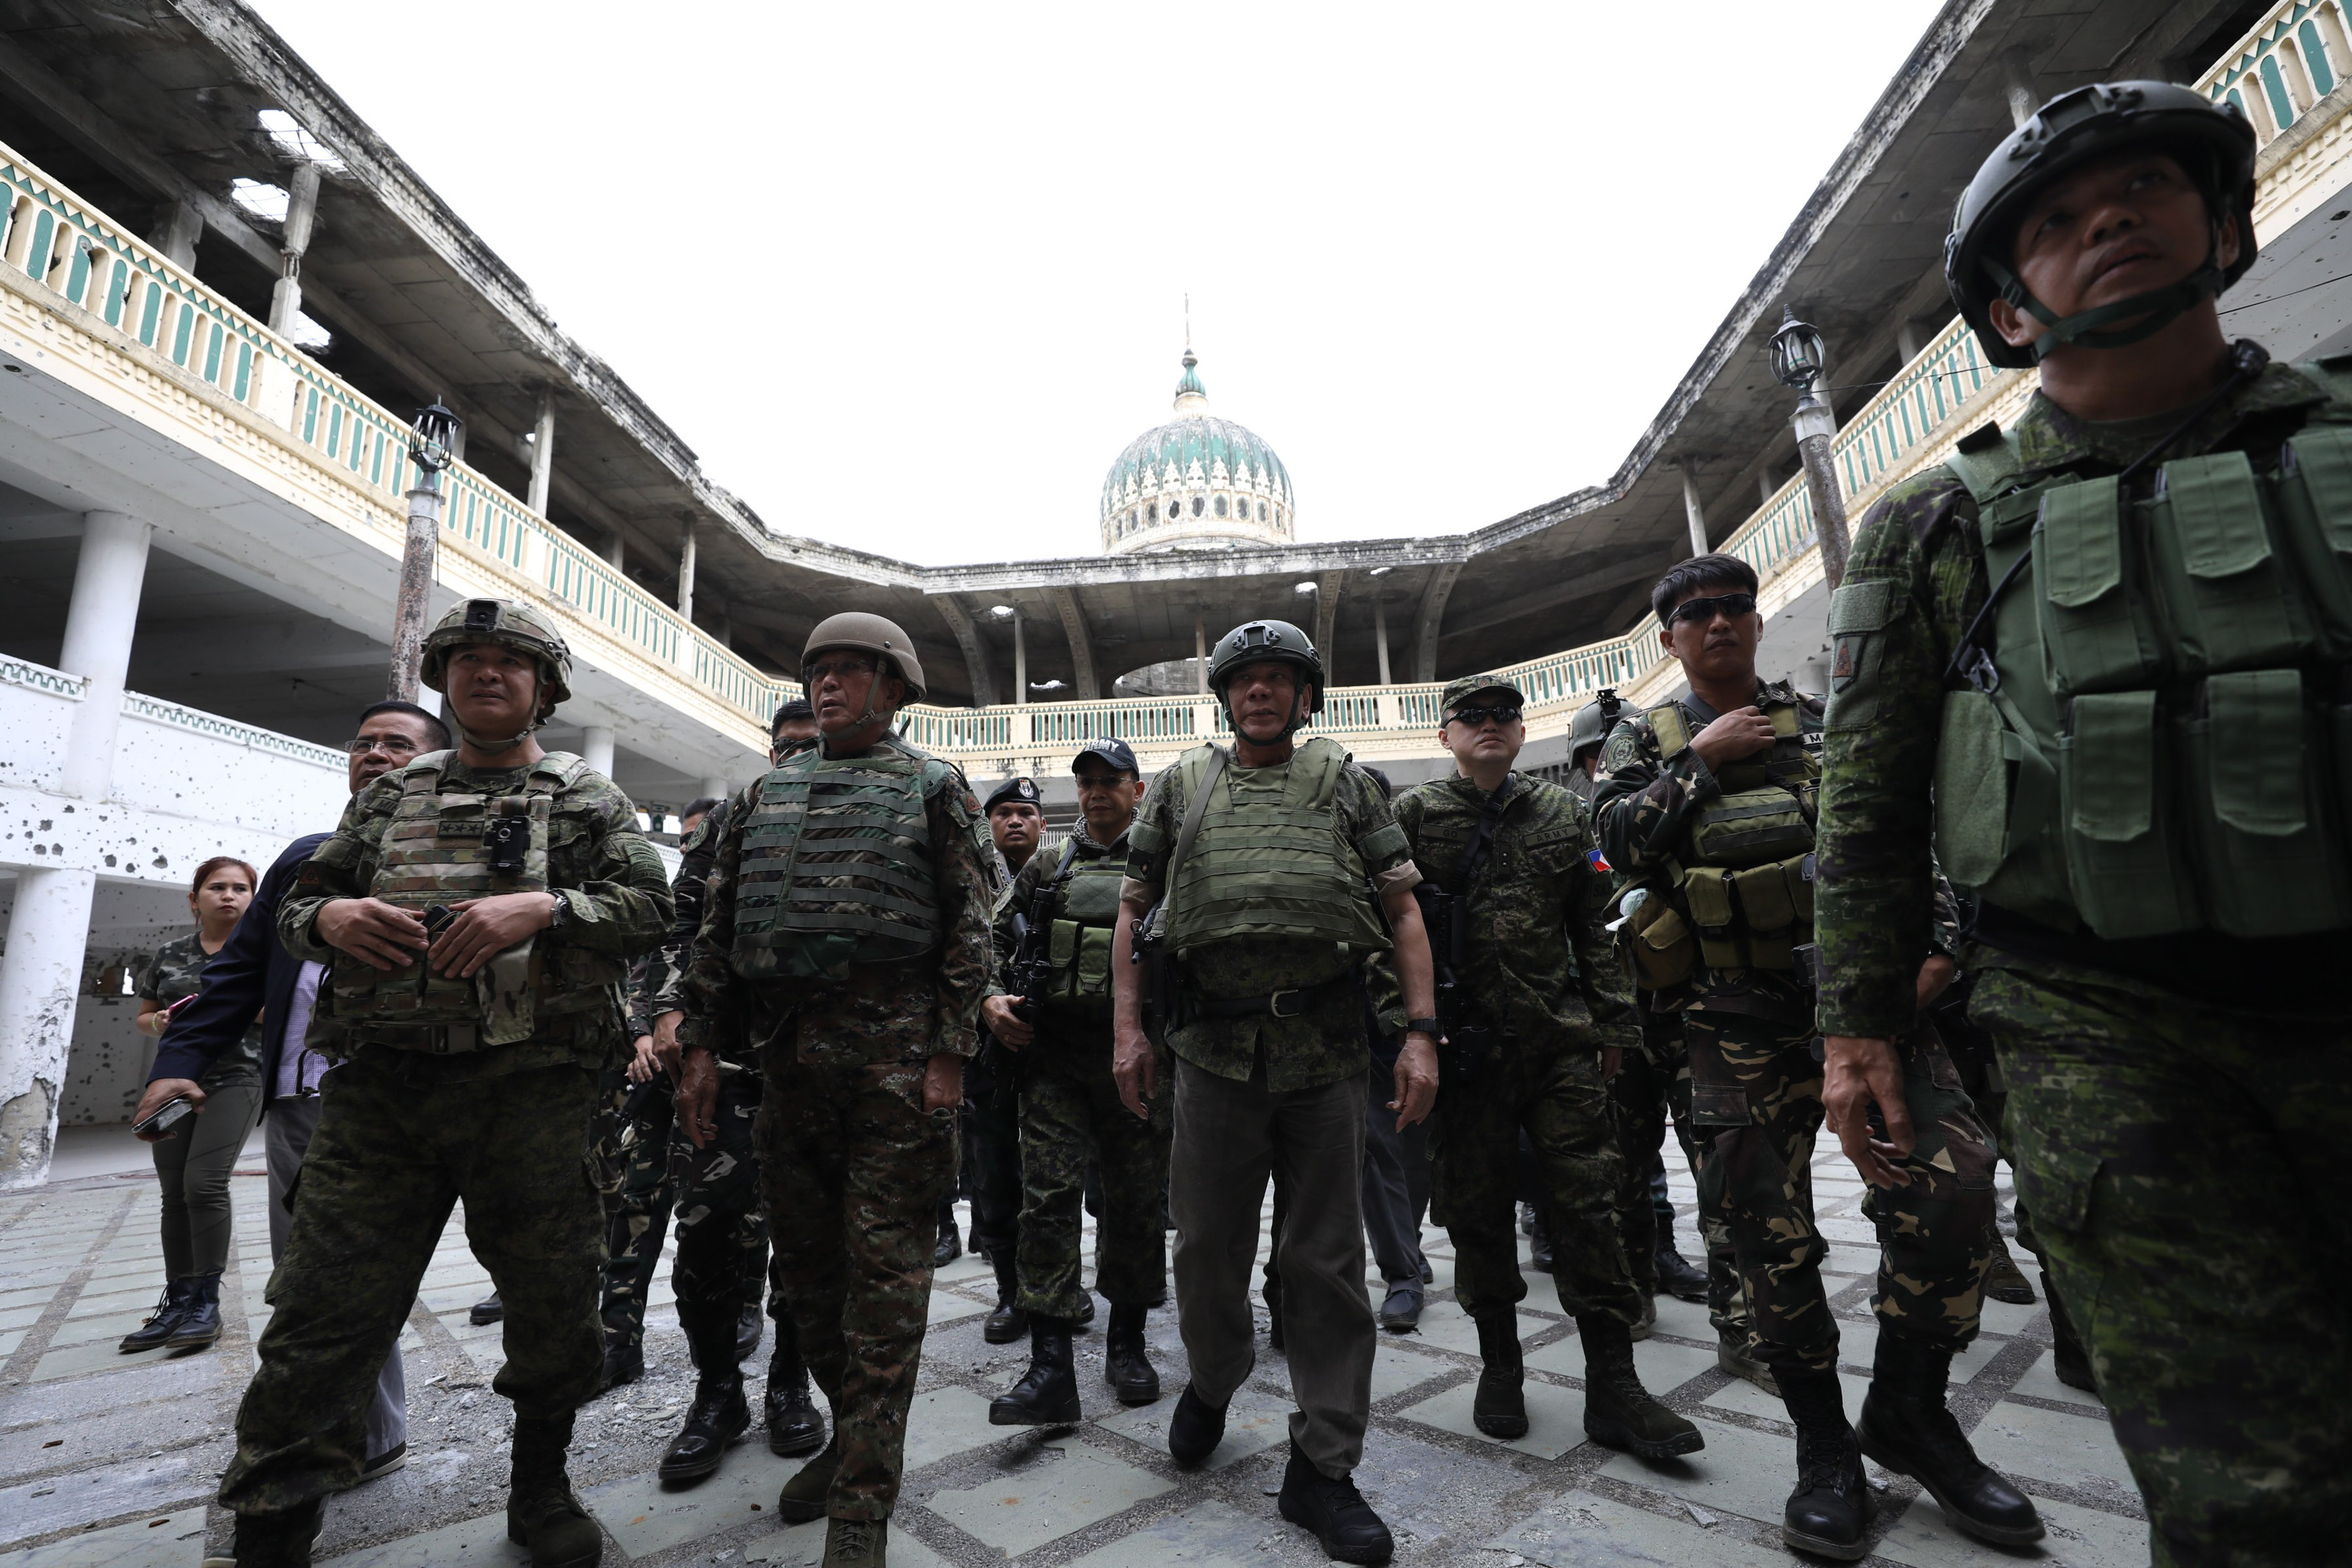 BACK IN MARAWI. President Duterte visits a mosque retaken by government forces from terrorists in Marawi. Presidential photo